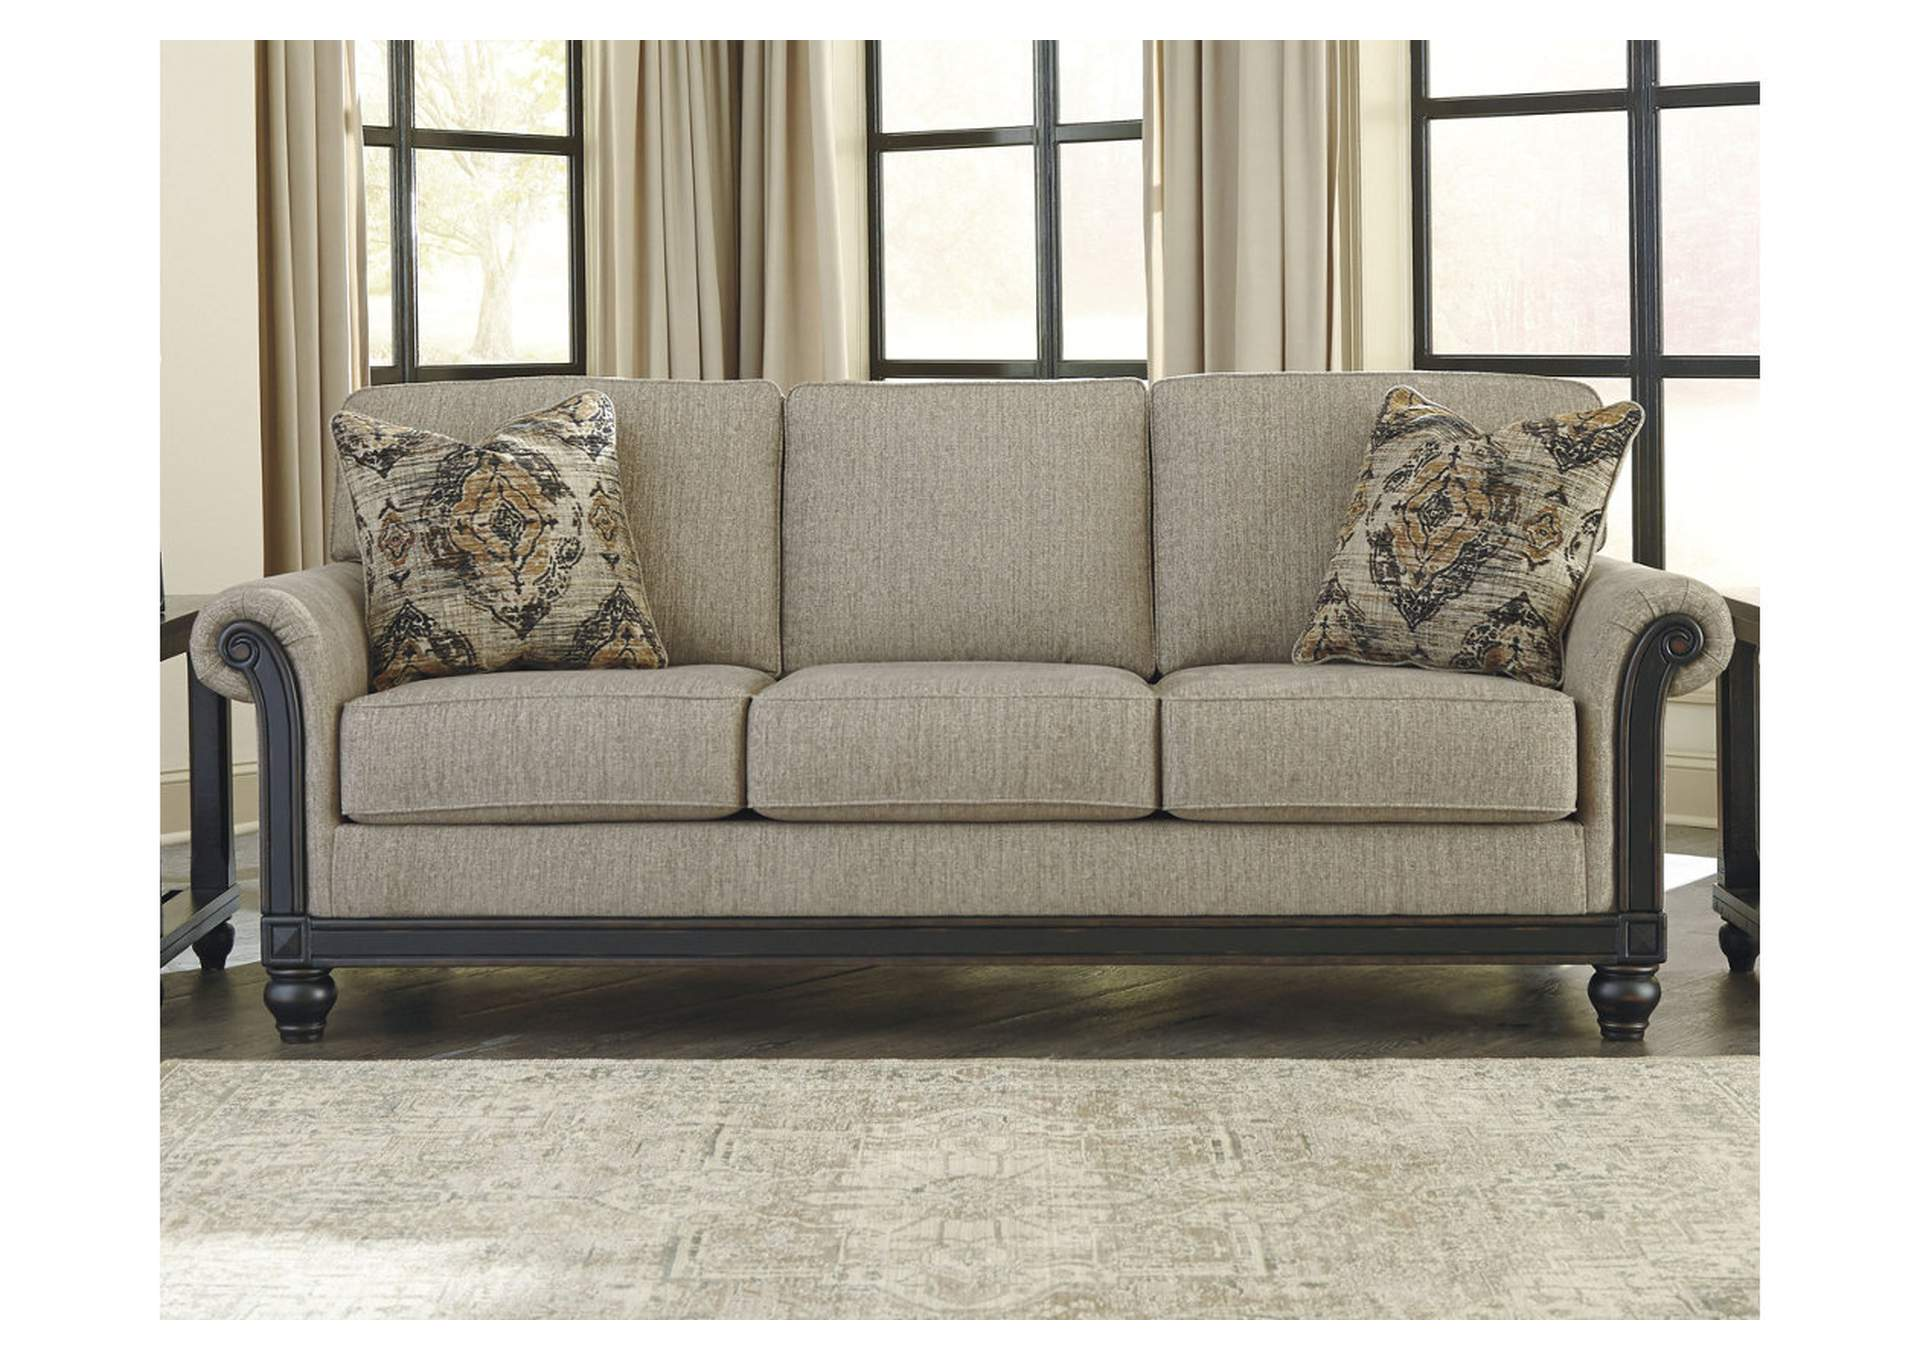 Ivan Smith Blackwood Taupe Queen Sofa Sleeper